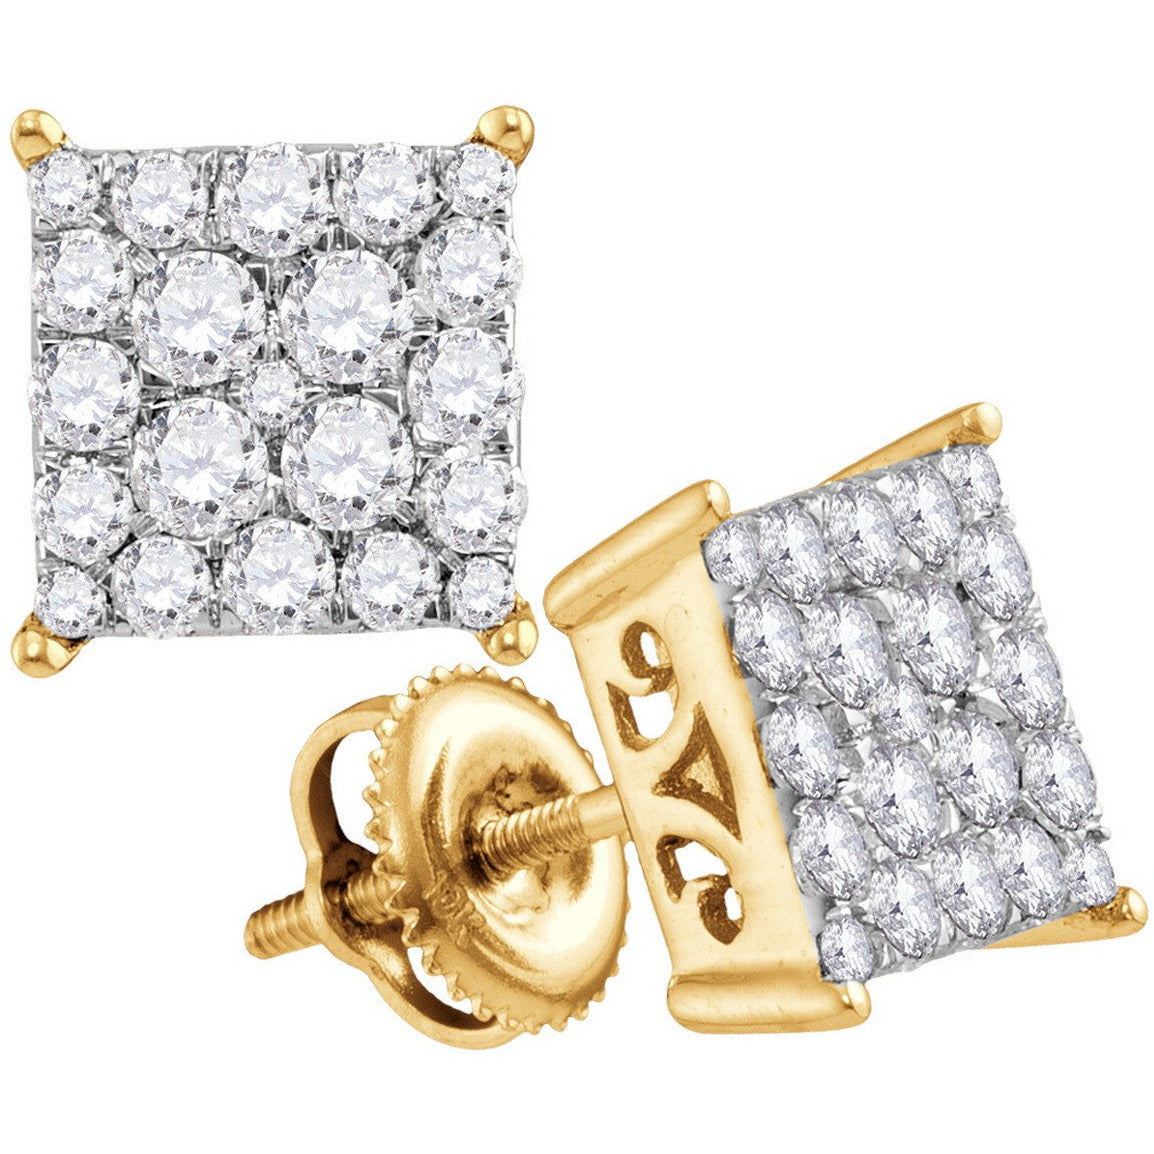 10kt Yellow Gold Womens Round Diamond Square Cluster Stud Earrings 1.00 Cttw 113305 - shirin-diamonds